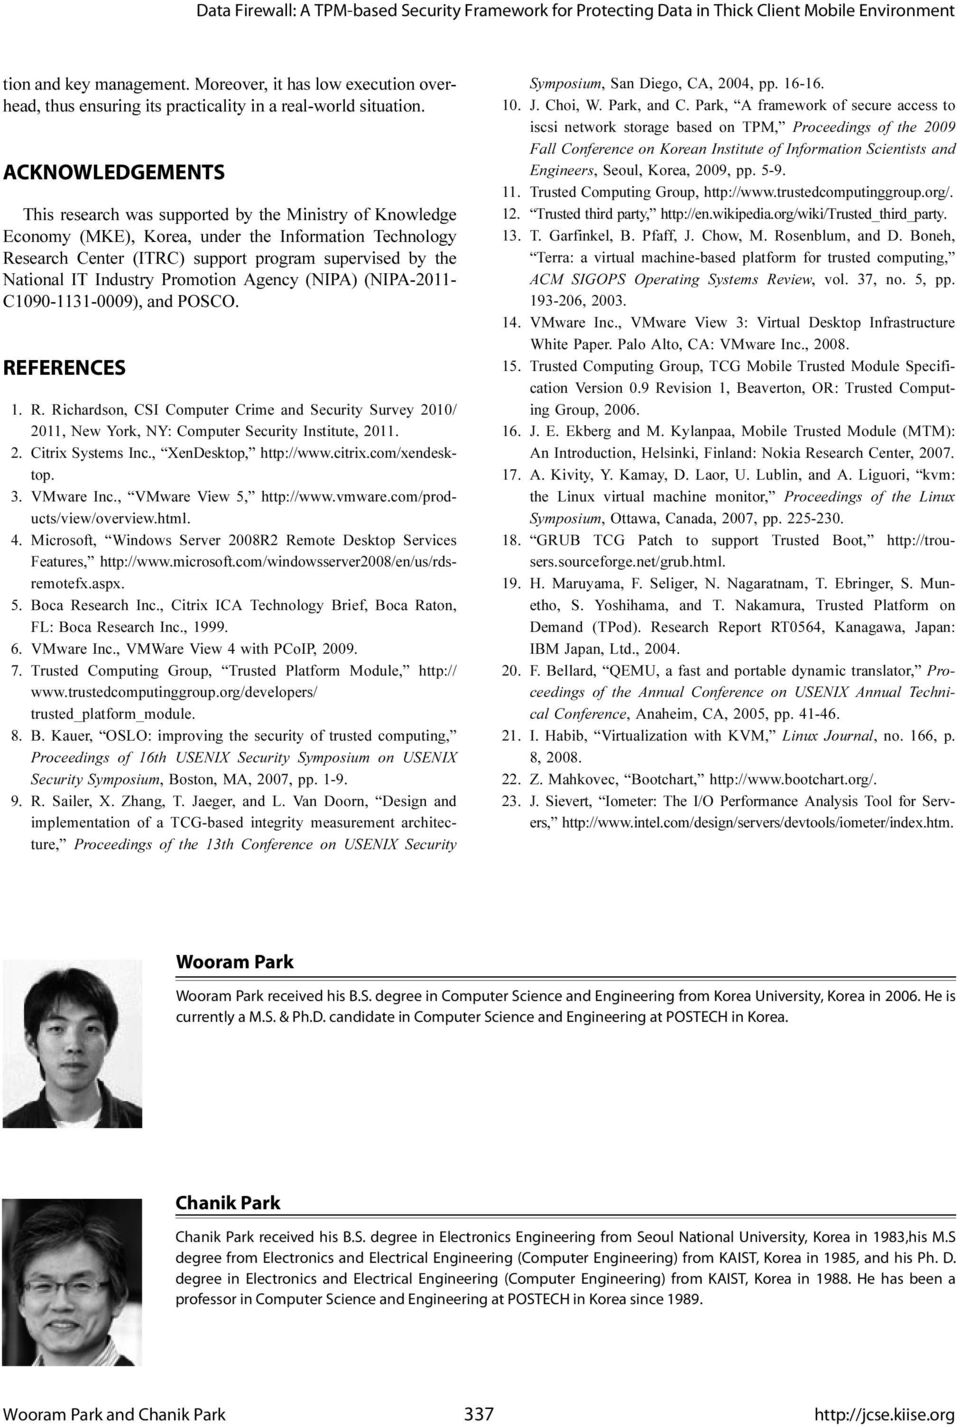 ACKNOWLEDGEMENTS This research was supported by the Ministry of Knowledge Economy (MKE), Korea, under the Information Technology Research Center (ITRC) support program supervised by the National IT